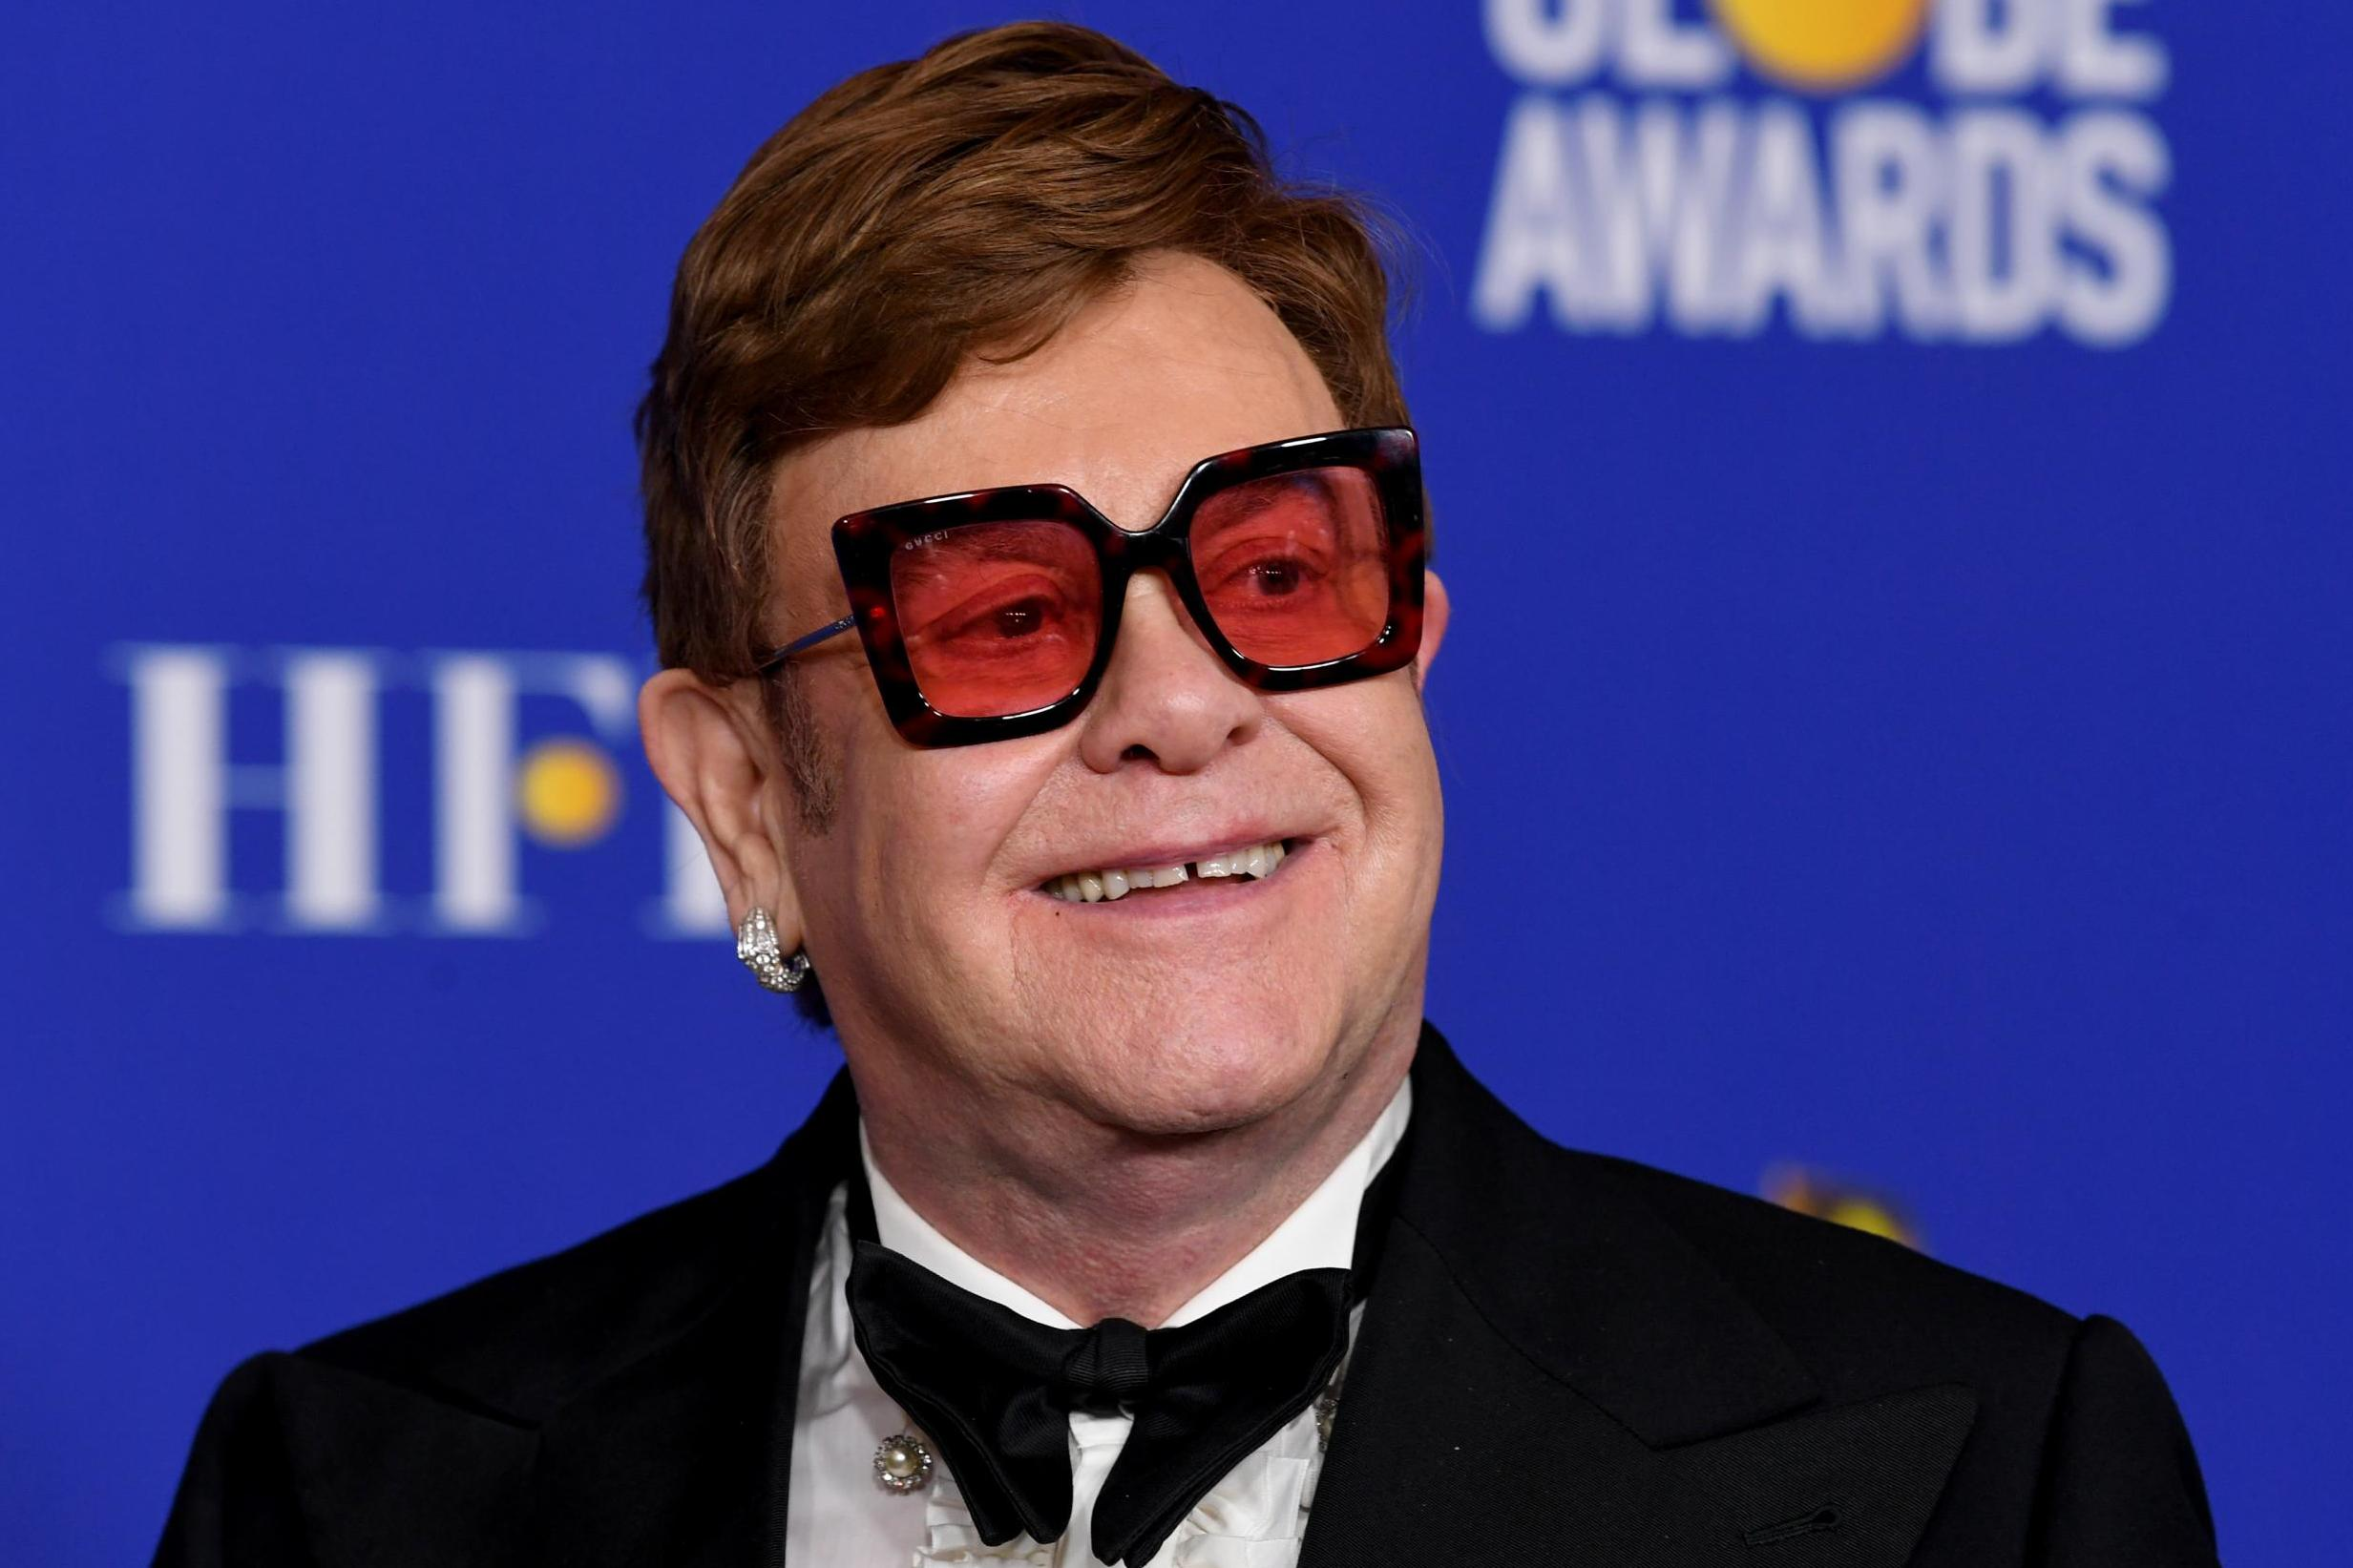 Elton John says it took a 'Herculean effort' to get his cocaine use noticed in 1970s Los Angeles